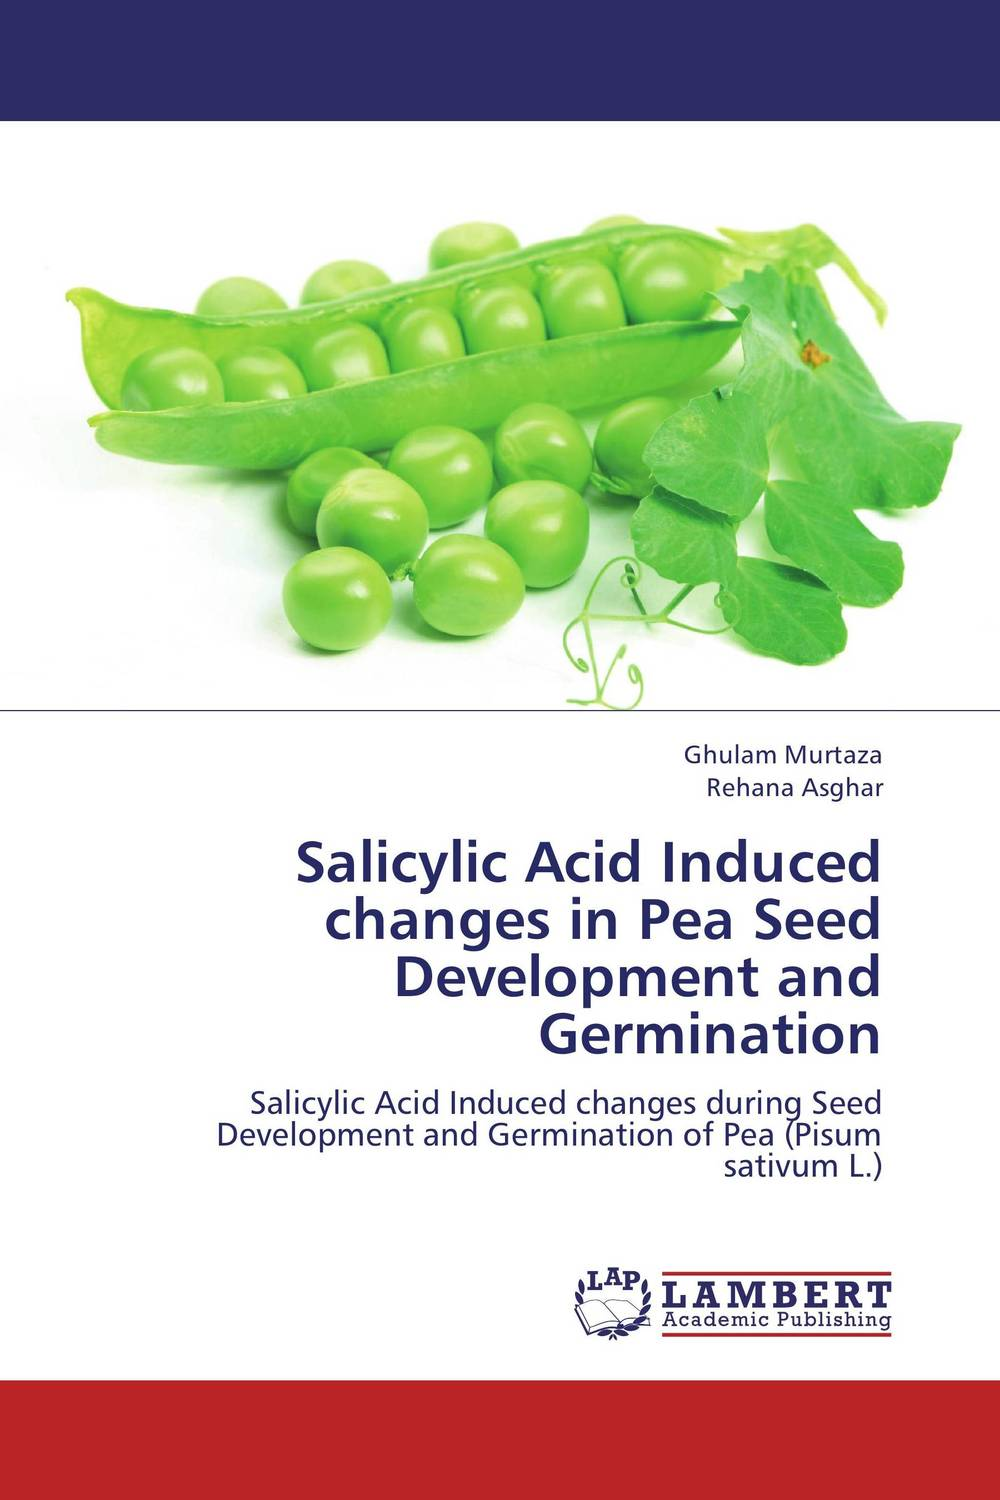 Salicylic Acid Induced changes in Pea Seed Development and Germination kazi rifat ahmed simu akter and kushal roy alternative development loom by reason of natural changes